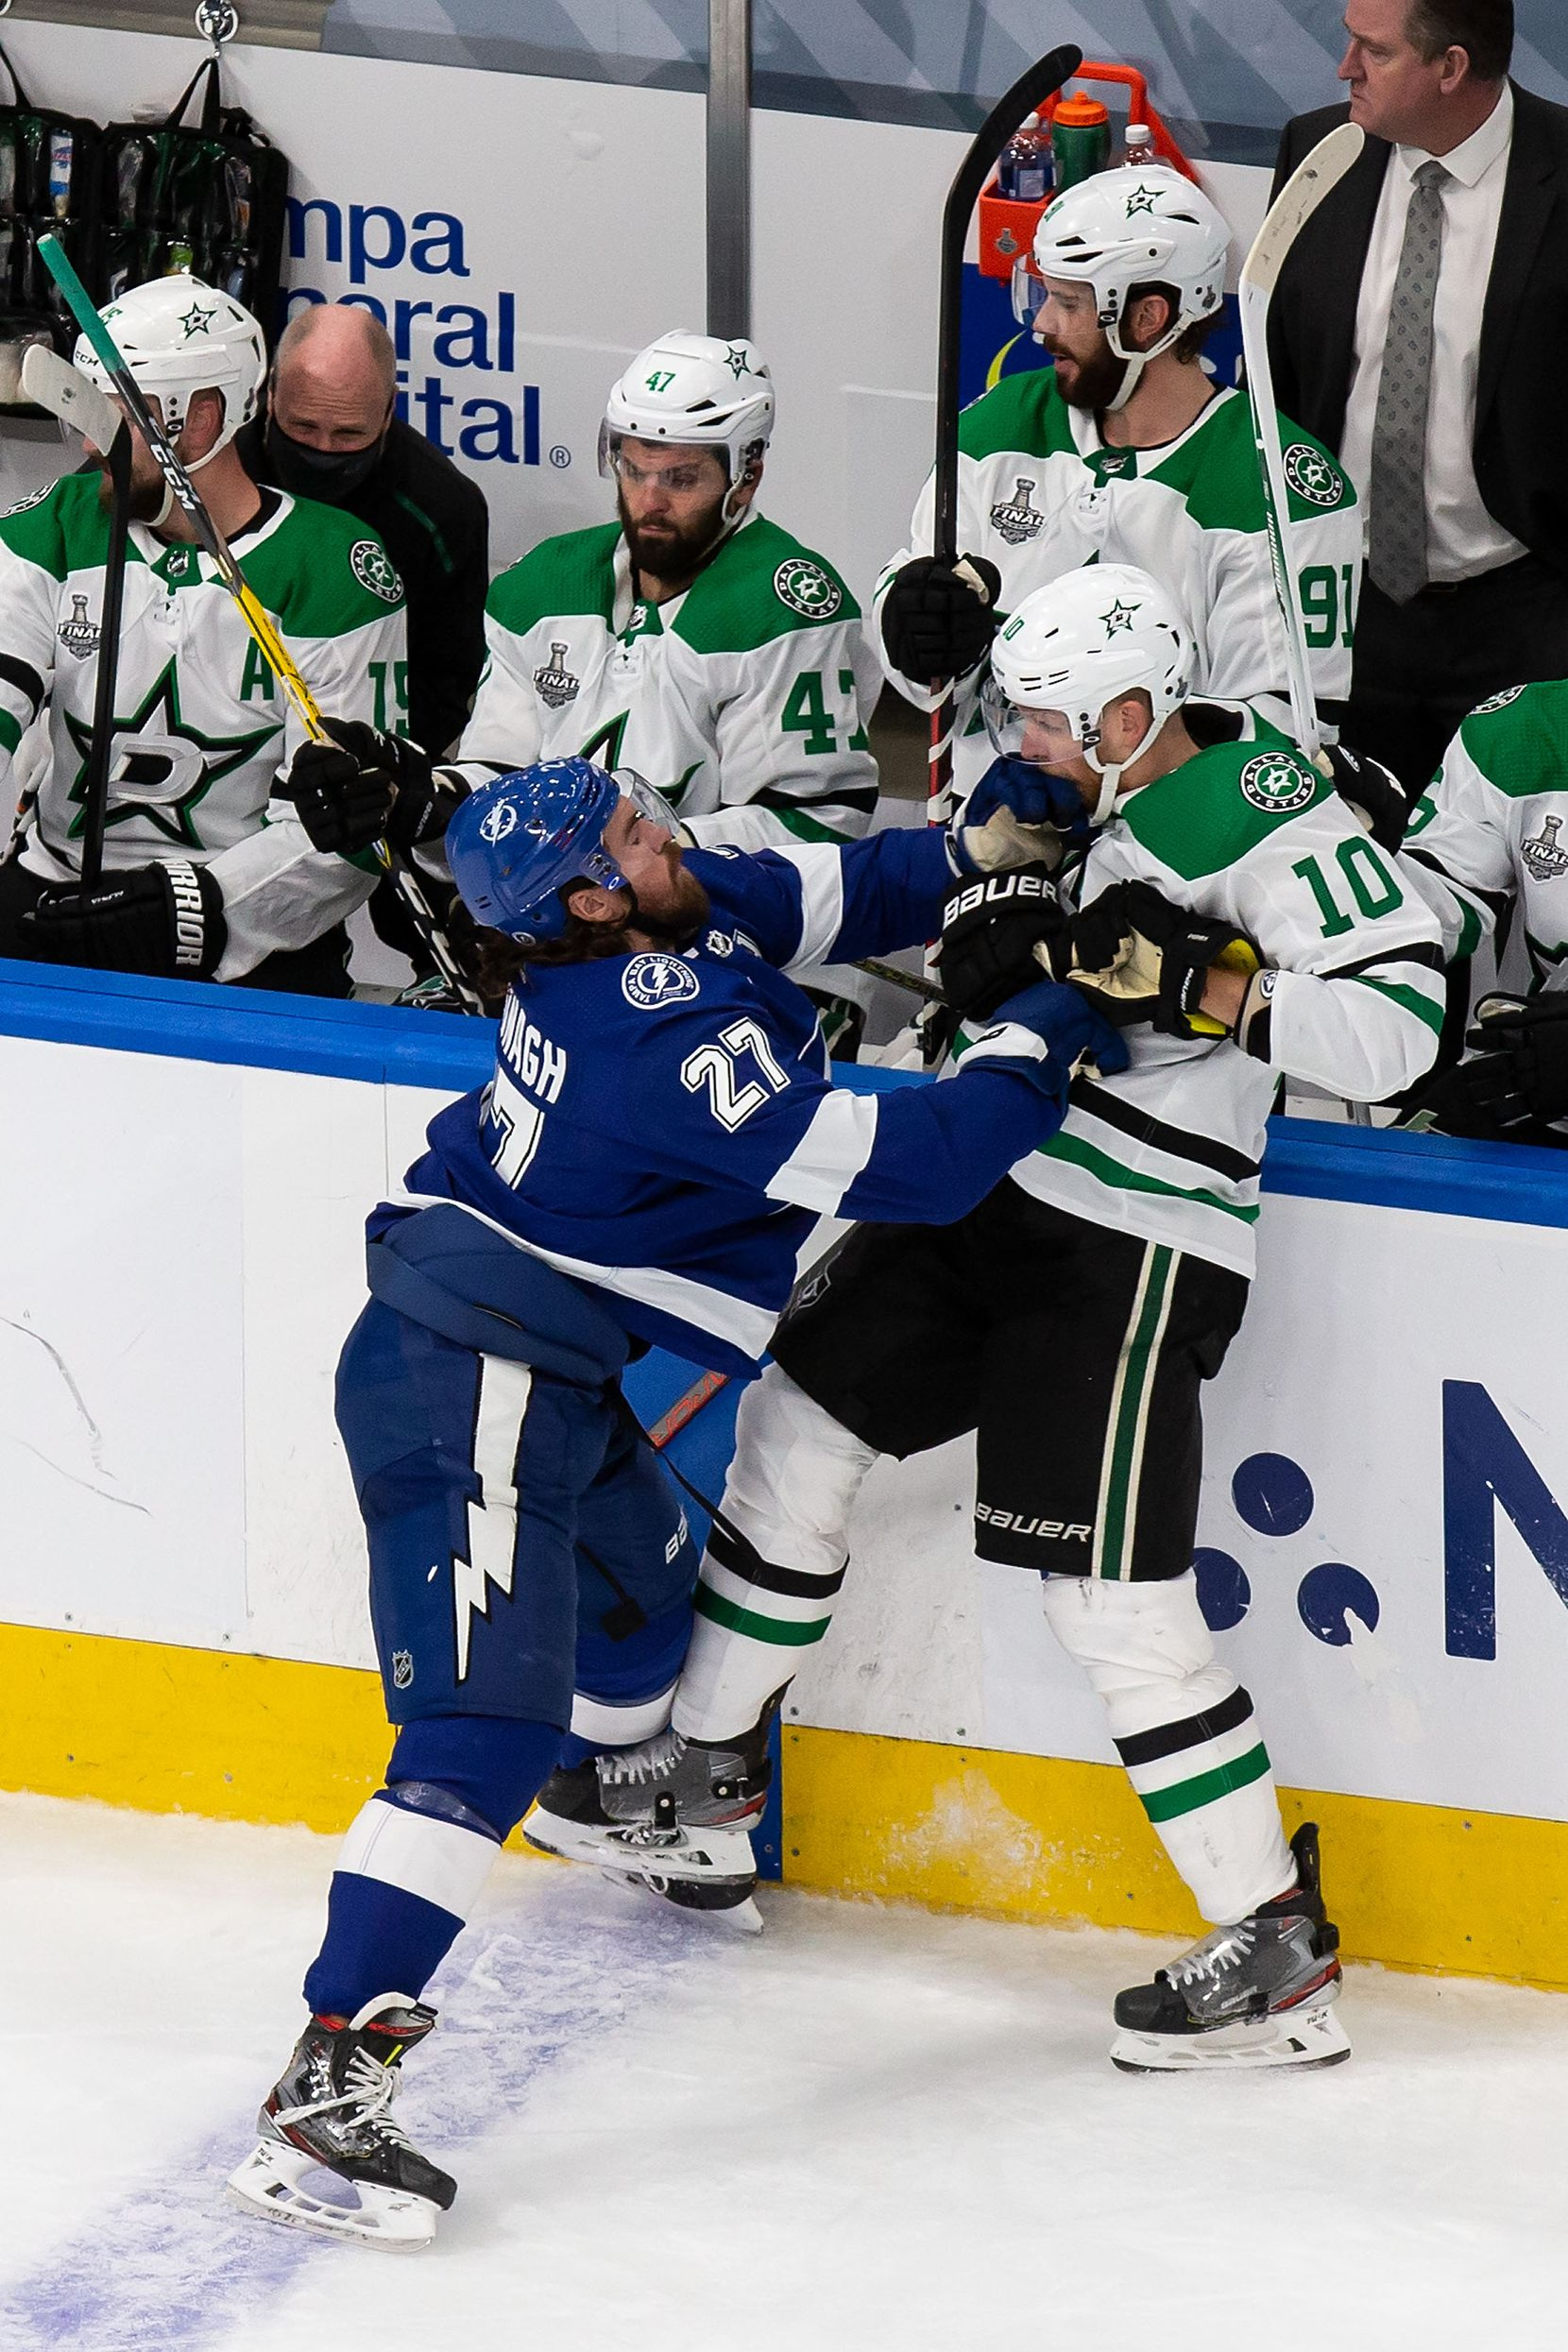 Corey Perry (10) of the Dallas Stars battles against Ryan McDonagh (27) of the Tampa Bay Lightning during Game Two of the Stanley Cup Final at Rogers Place in Edmonton, Alberta, Canada on Monday, September 21, 2020. (Codie McLachlan/Special Contributor)